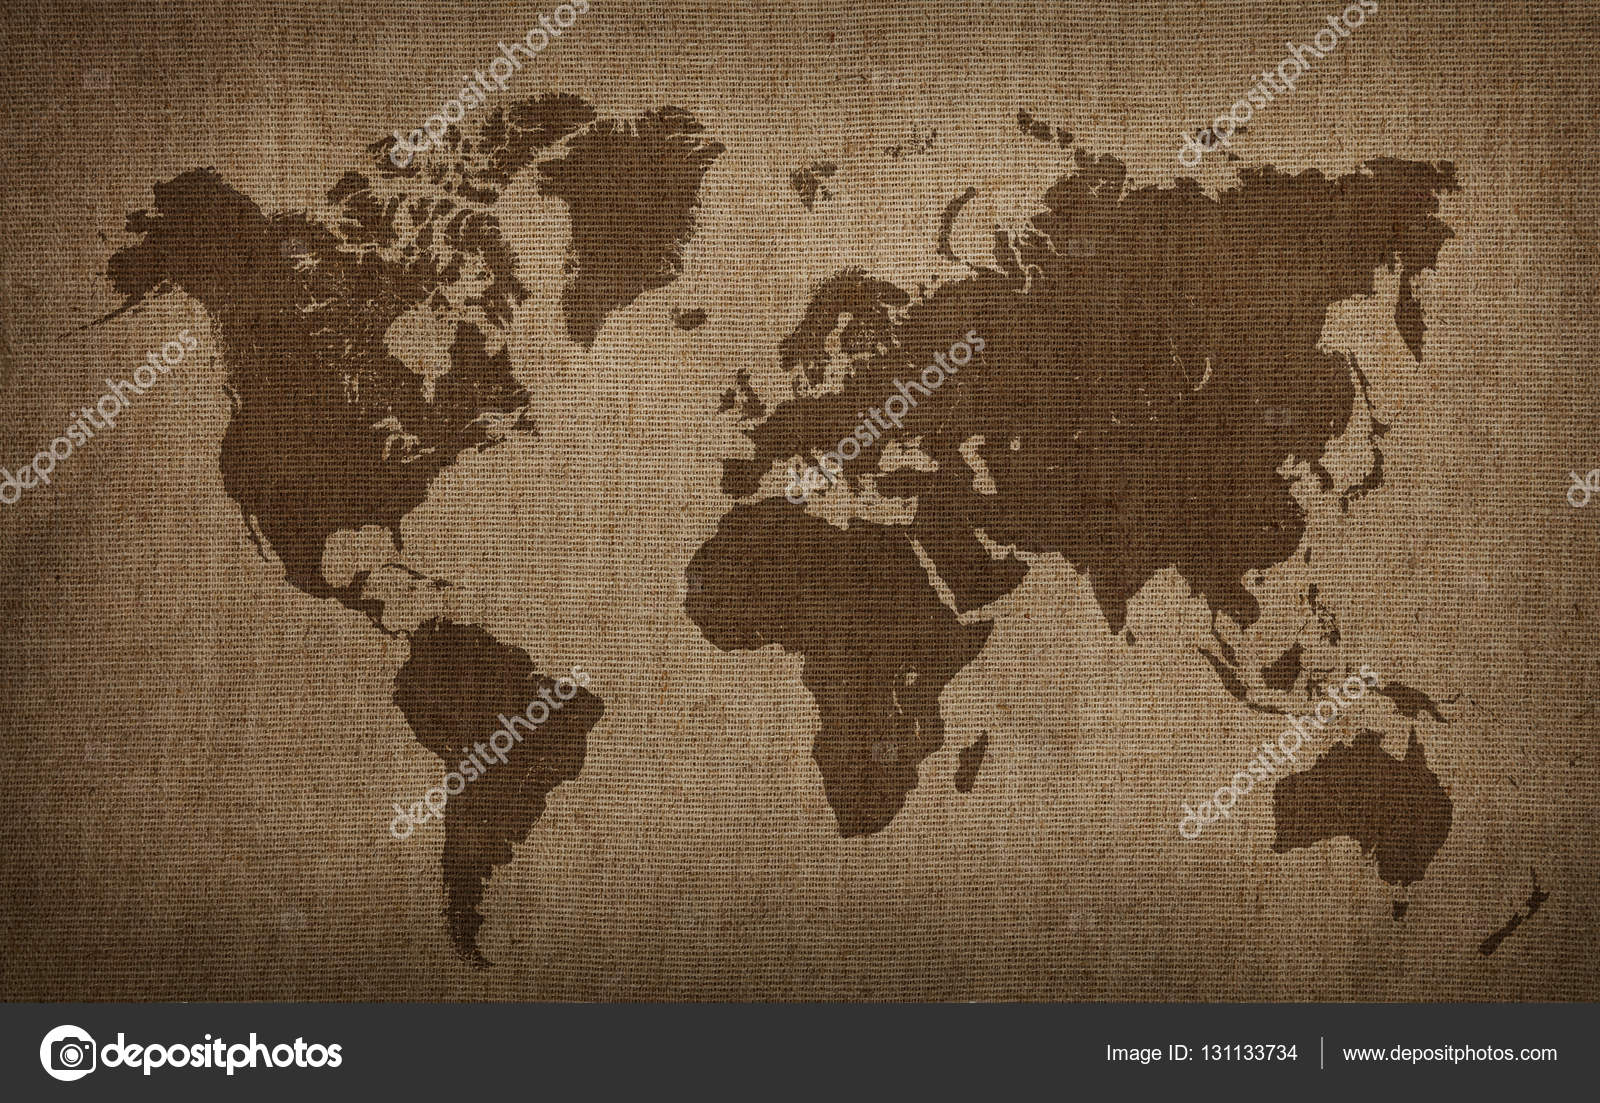 Uitgelezene Brown world map on old vintage flax linen canvas — Stock Photo BE-78